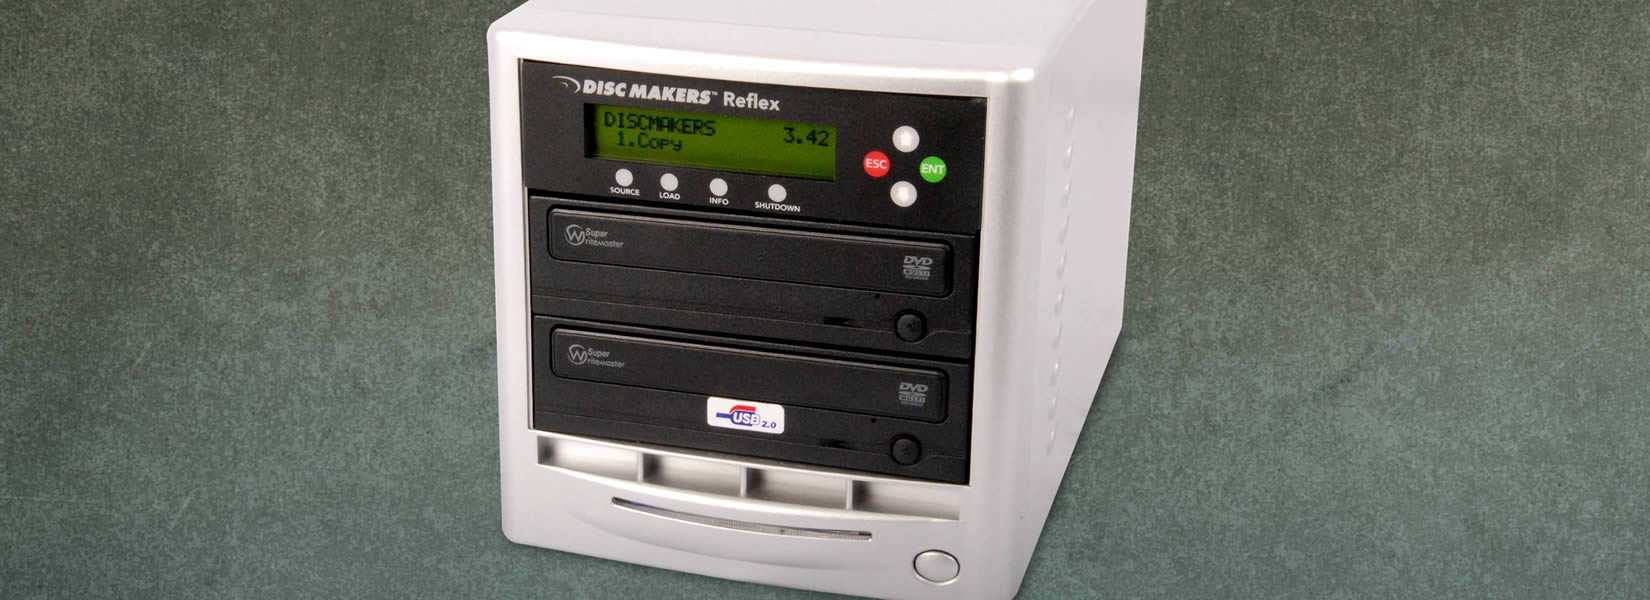 1 to 1 DVD duplicator